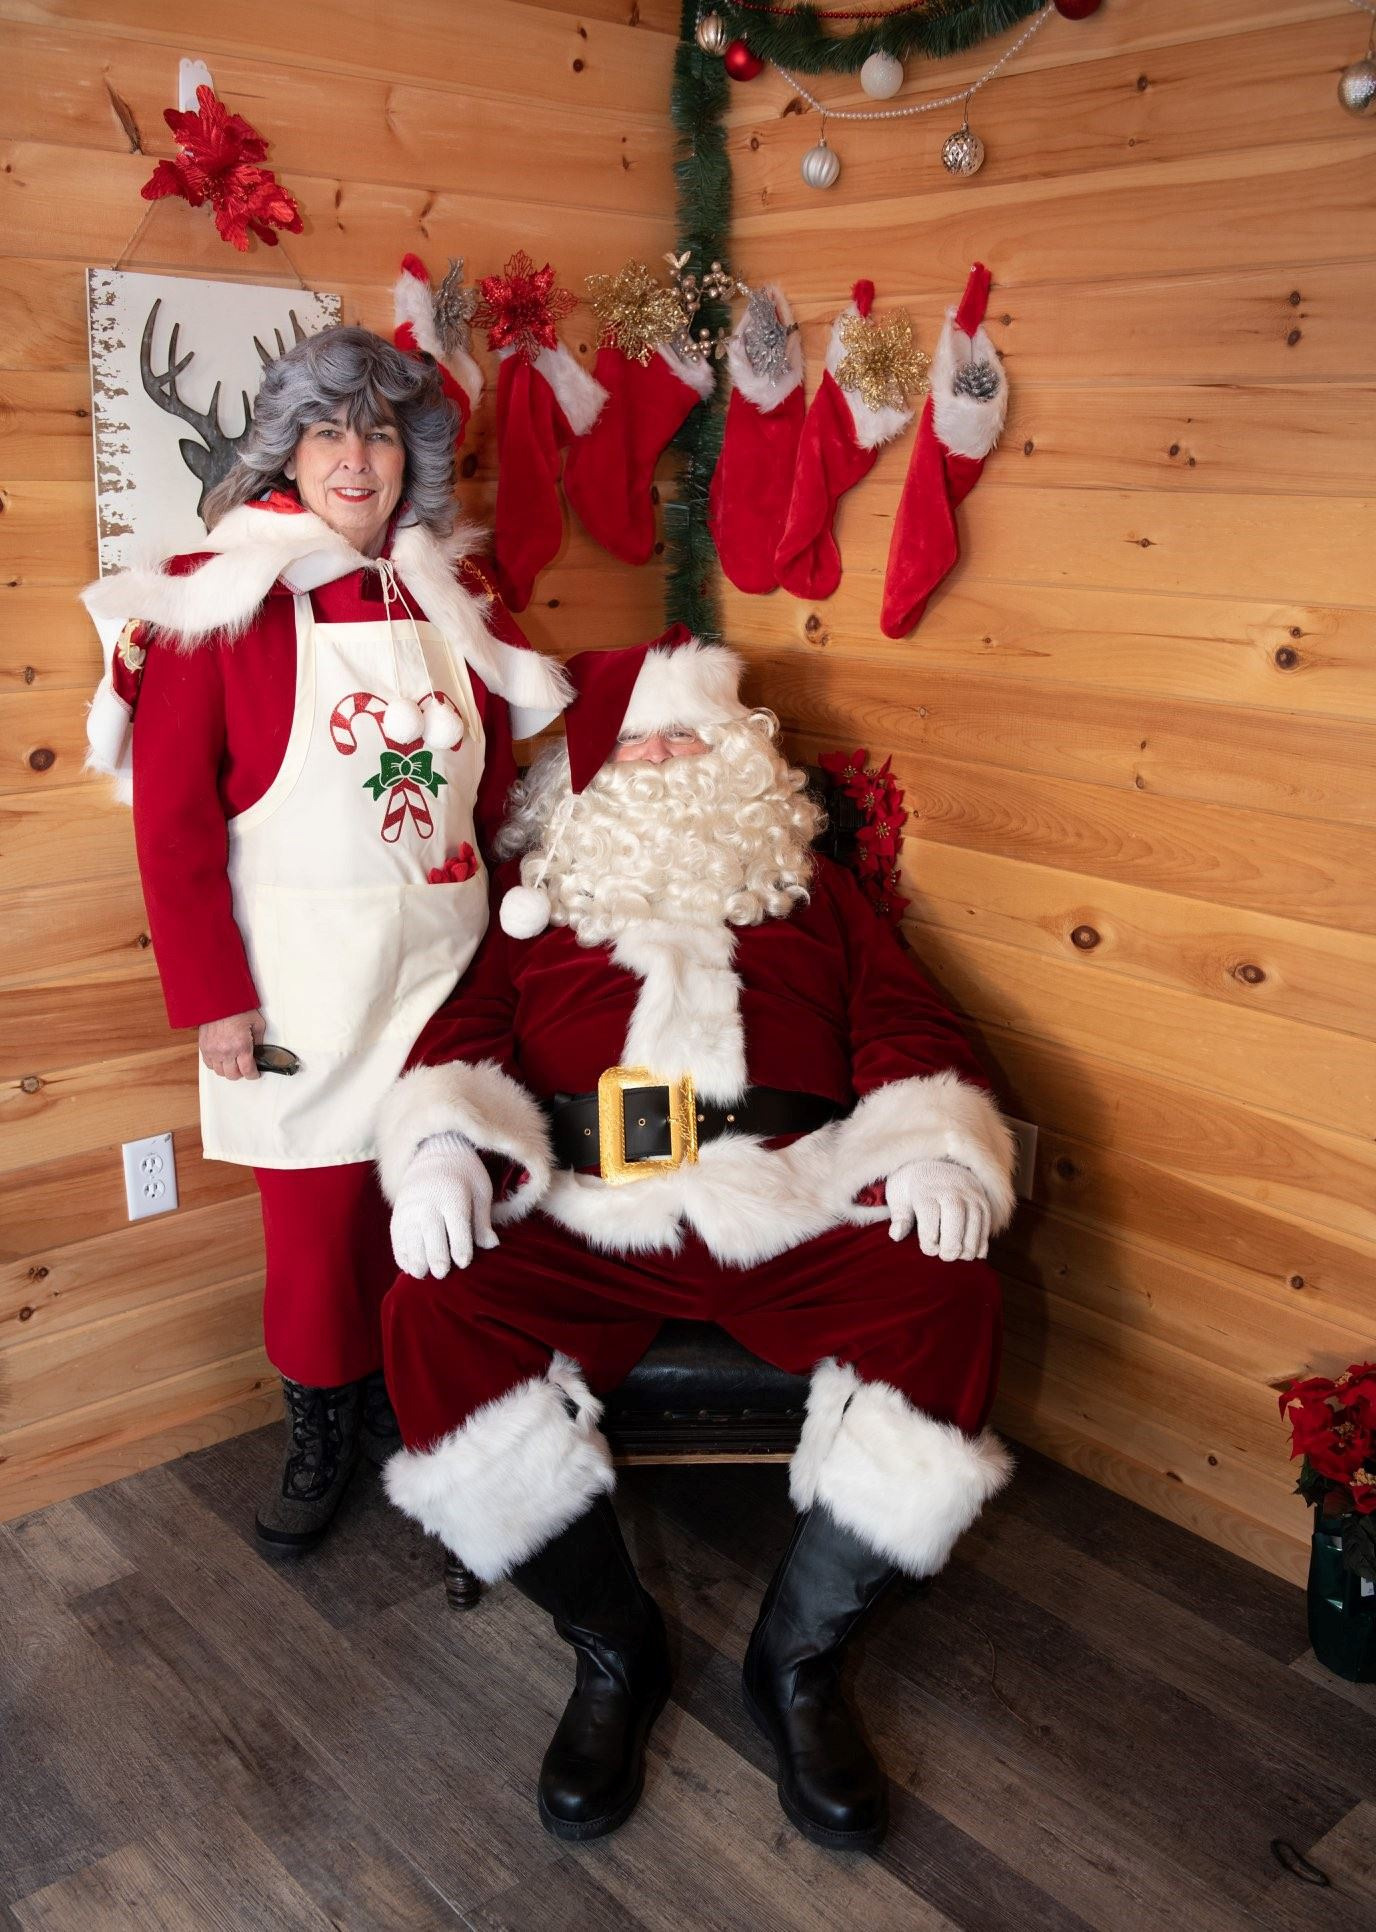 Mr. & Mrs. Claus at Pine Banks Park